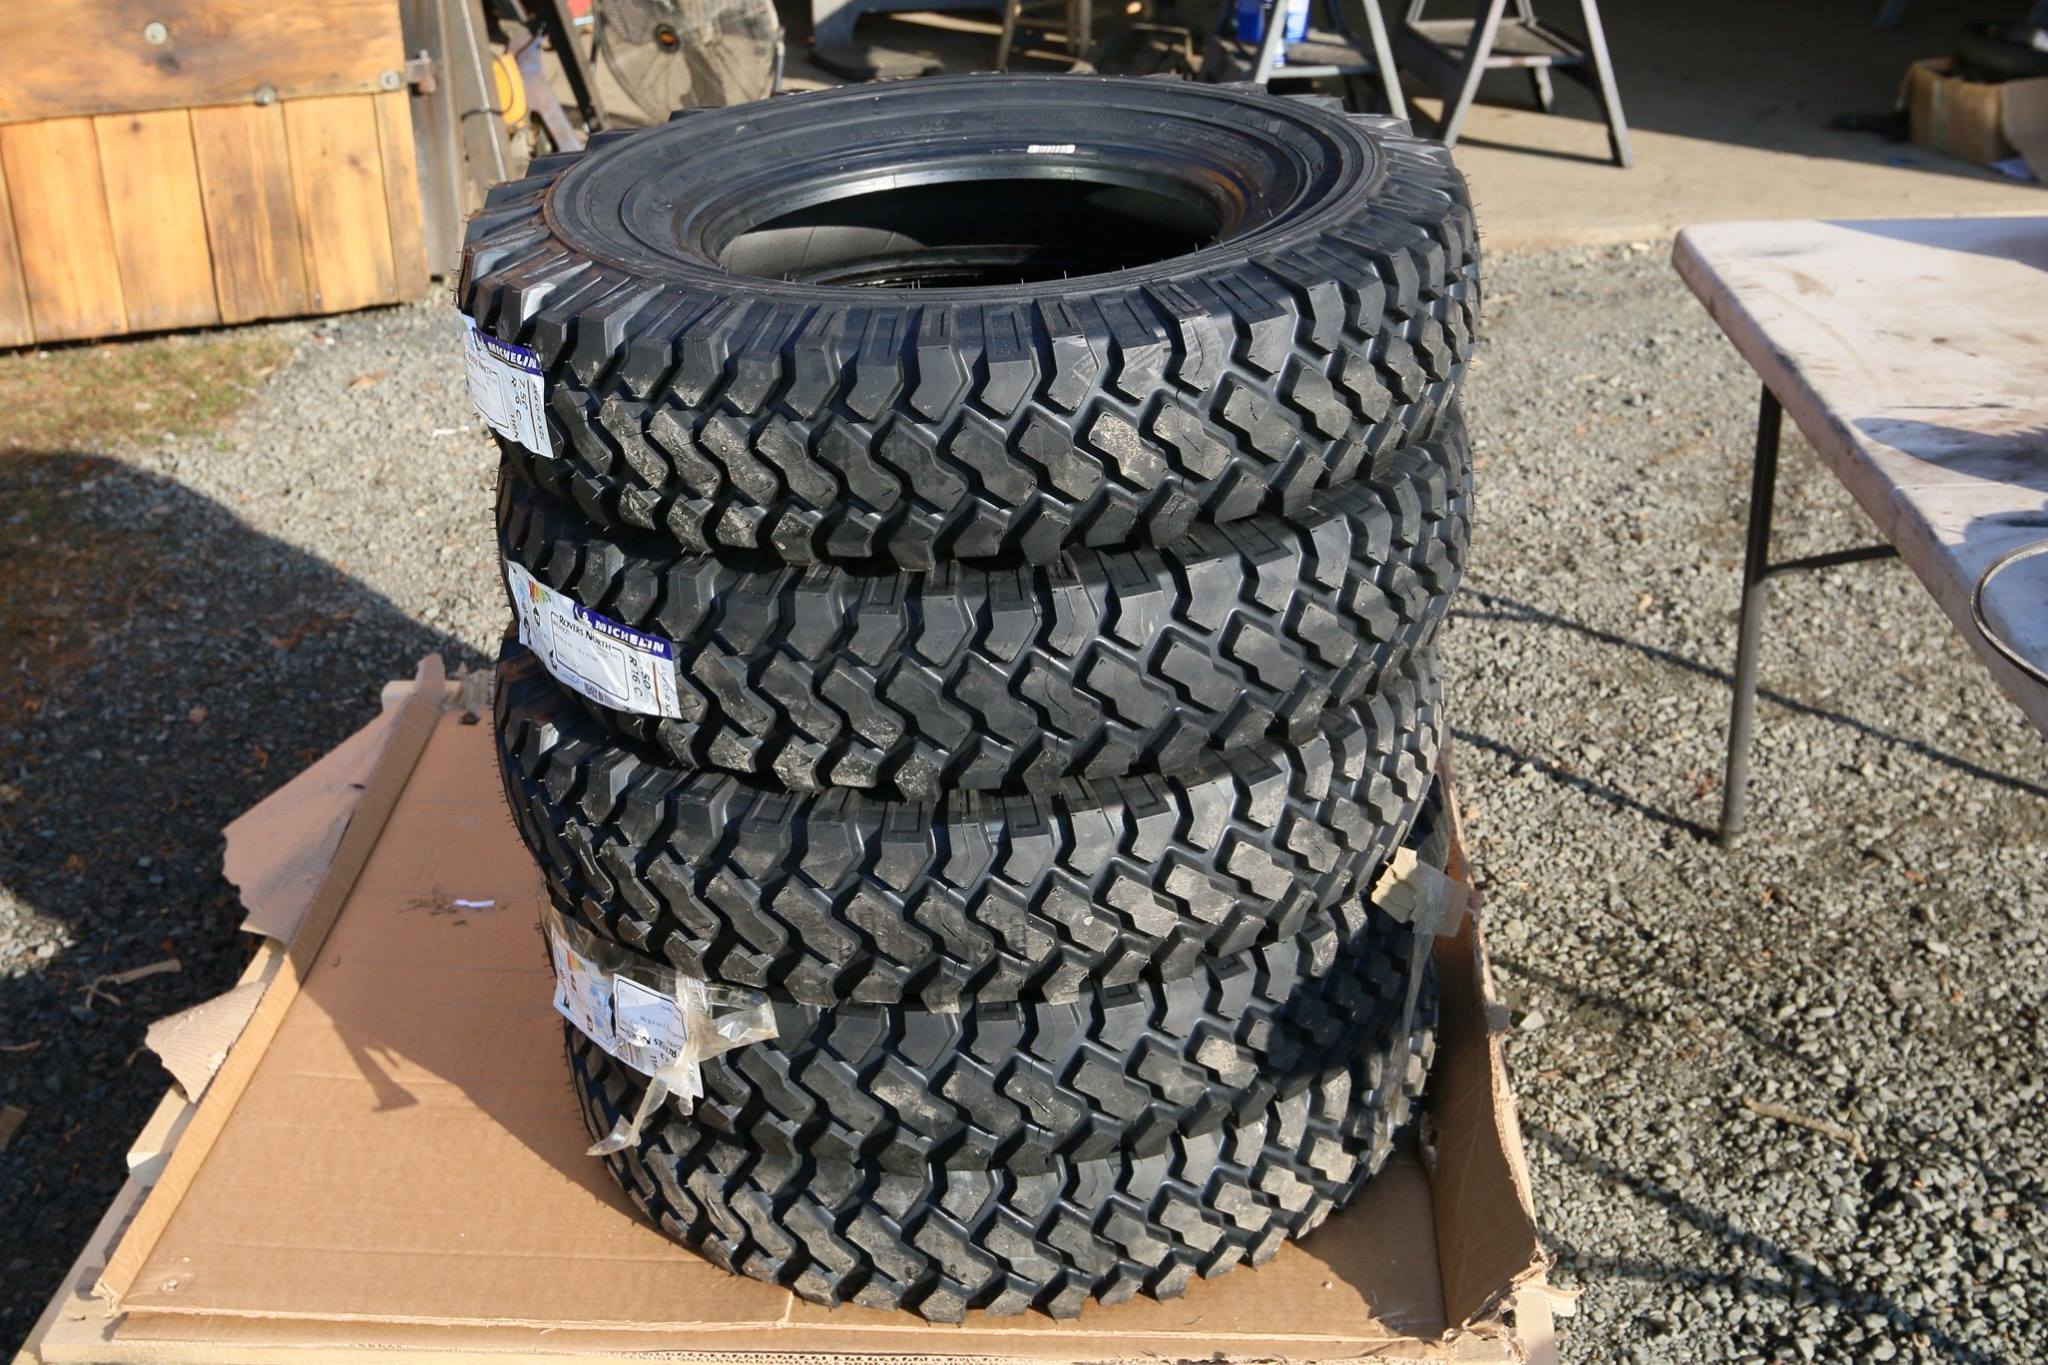 Michelin XZL 7.50 16s tires with steel belted side walls for military purposes.